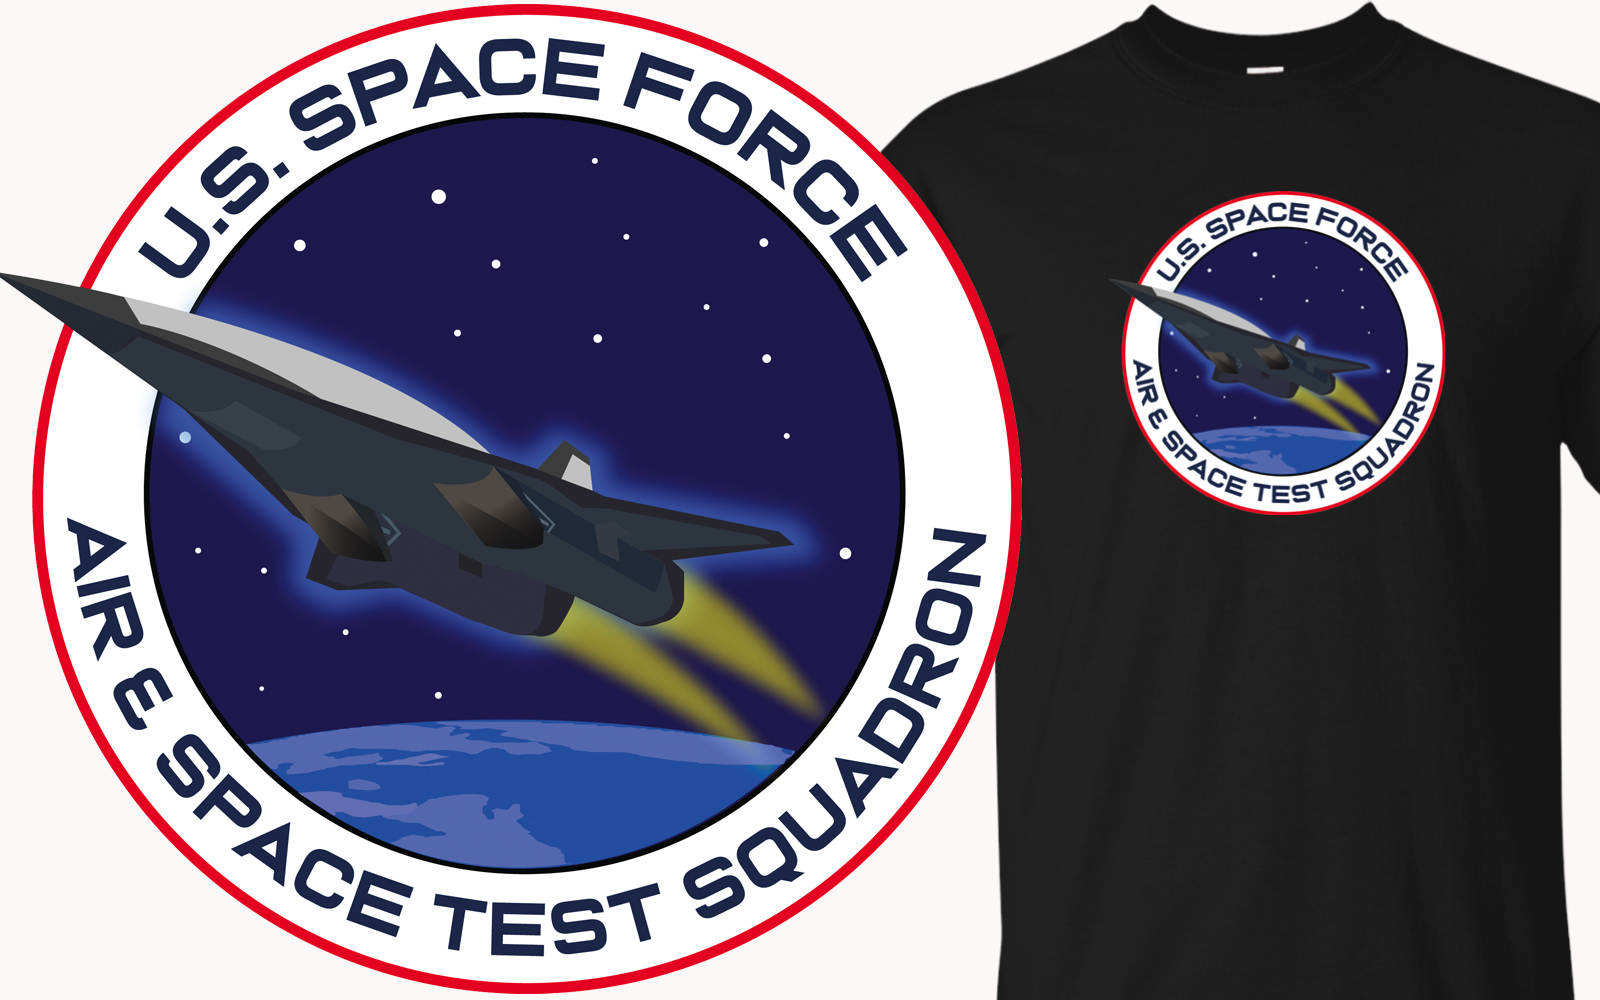 Space Force Test Squadron!